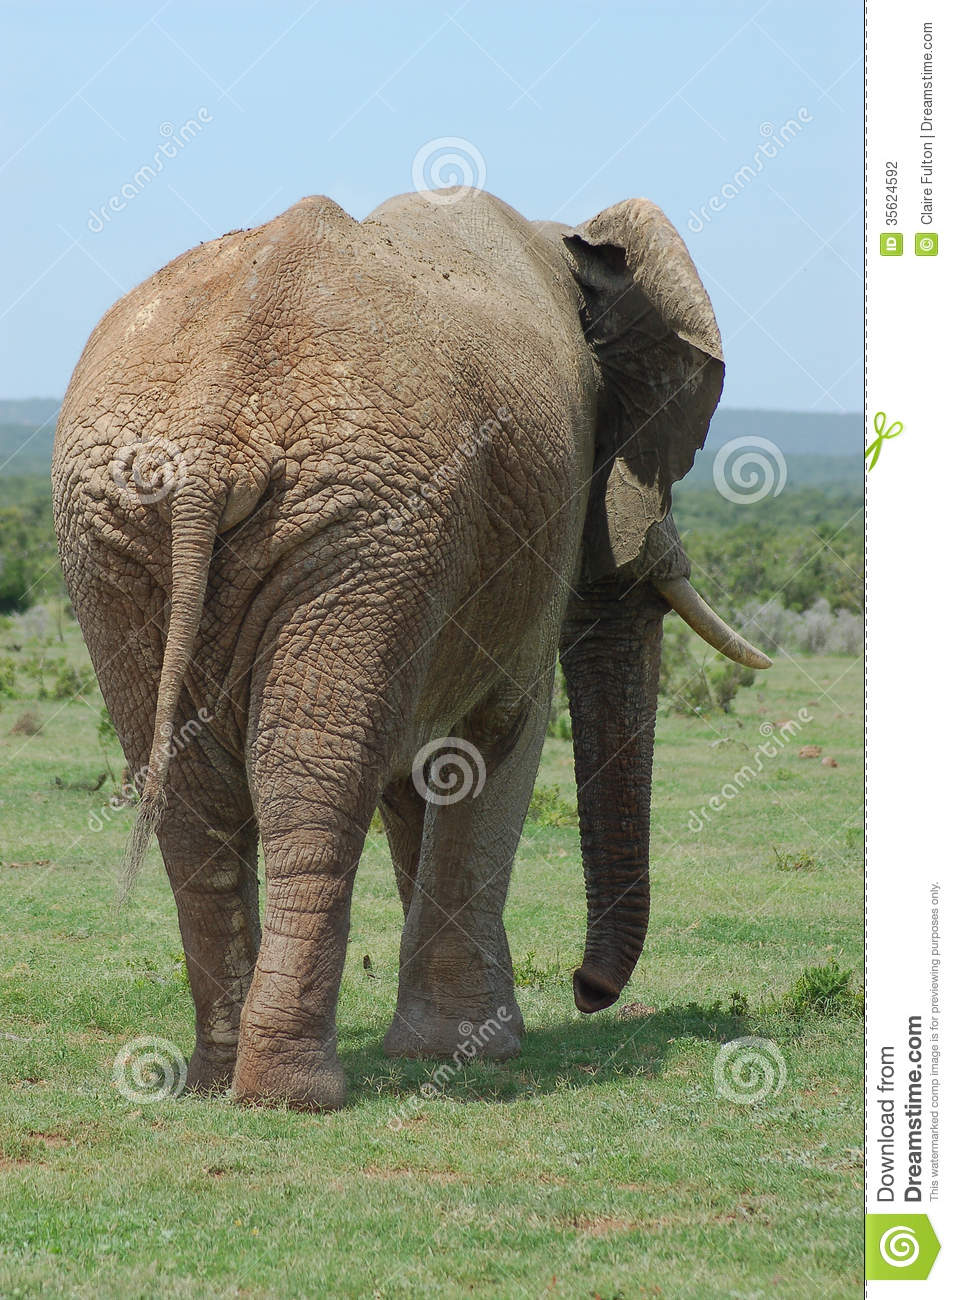 Elephant Pictures - Kids Search